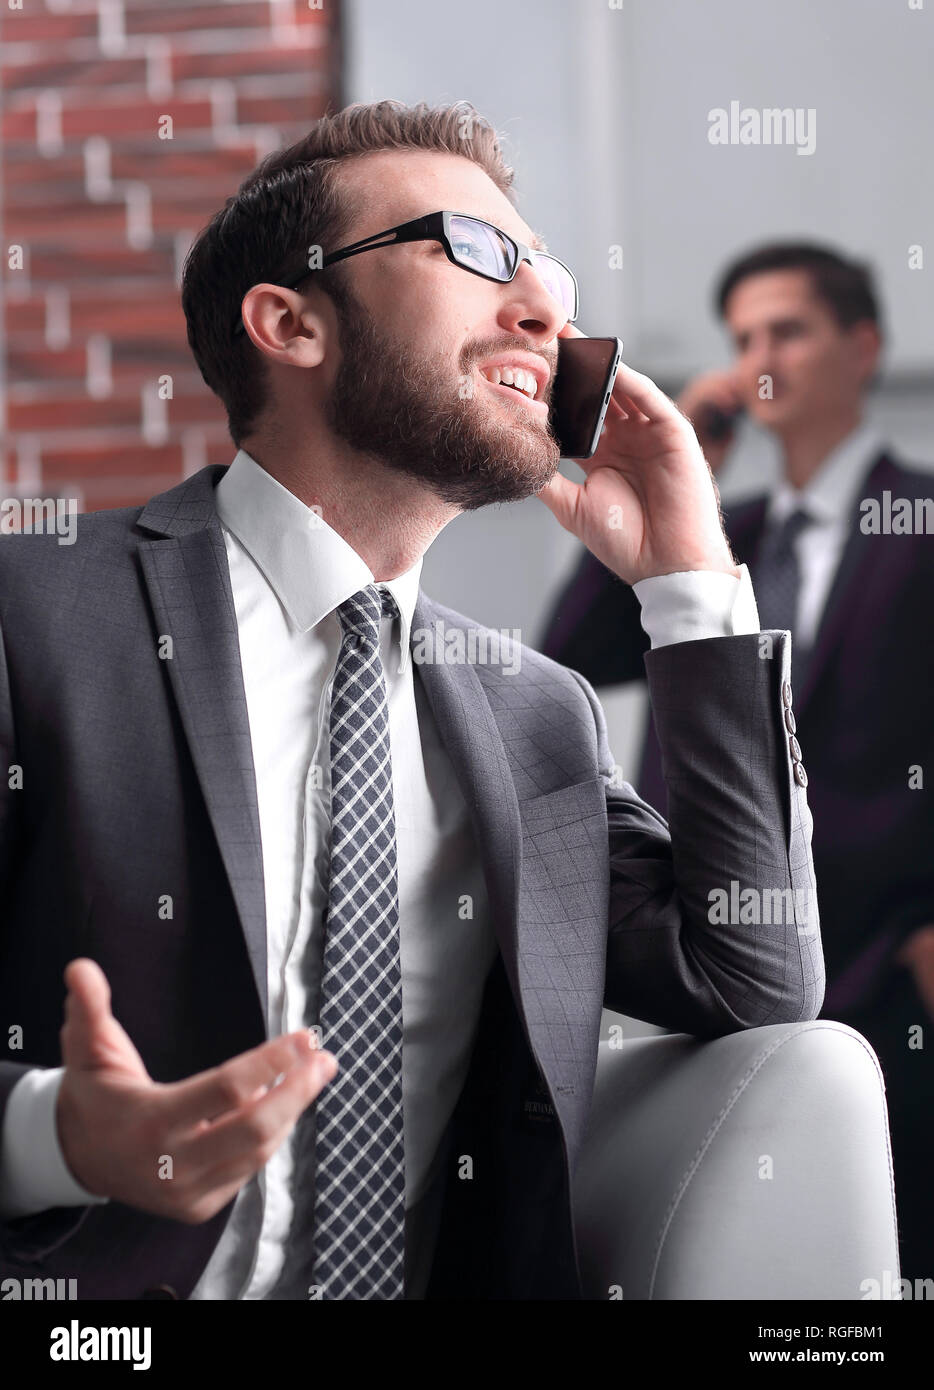 Handsome businessman speaking on mobile phone in office - Stock Image